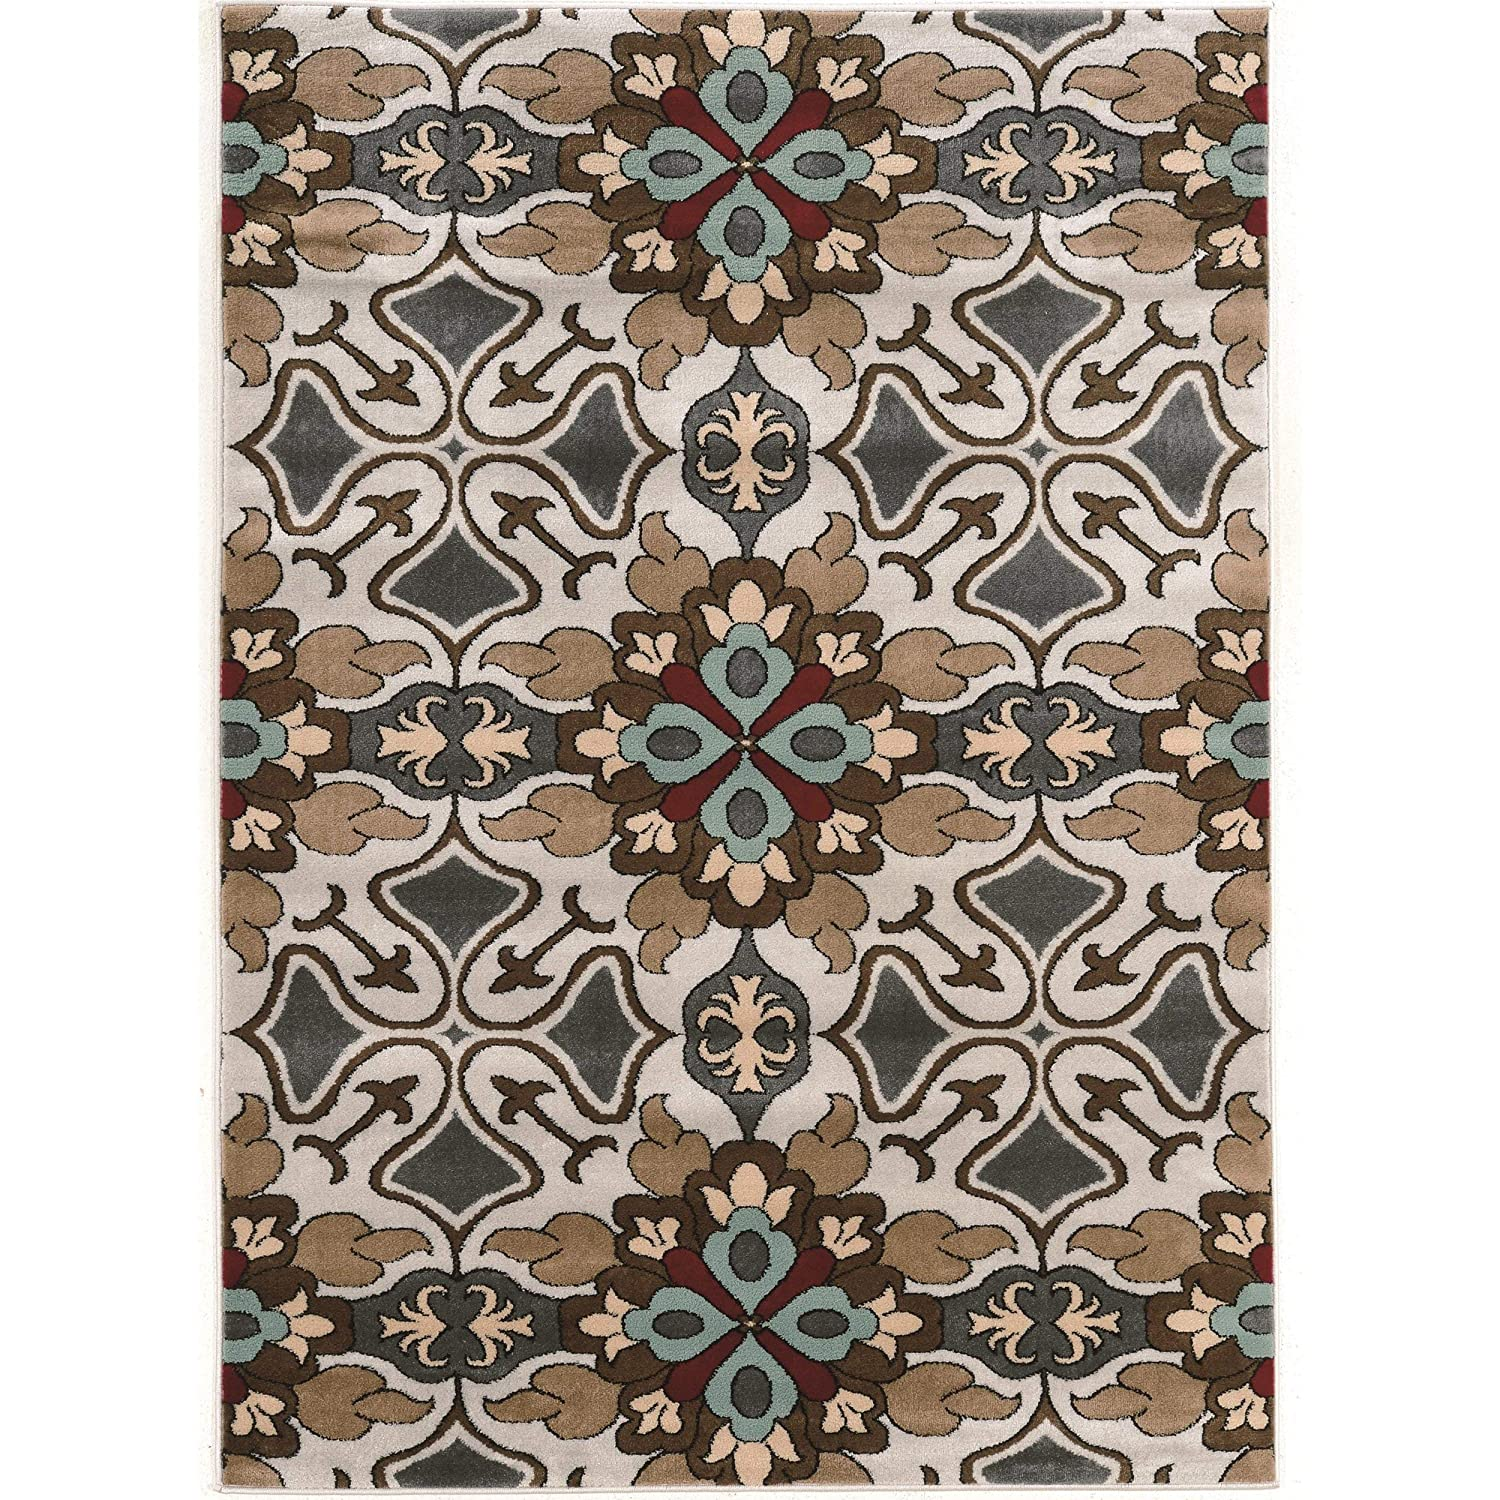 Gray Linon Elegance Collection Flowers Light Synthetic Rugs 2 x 3